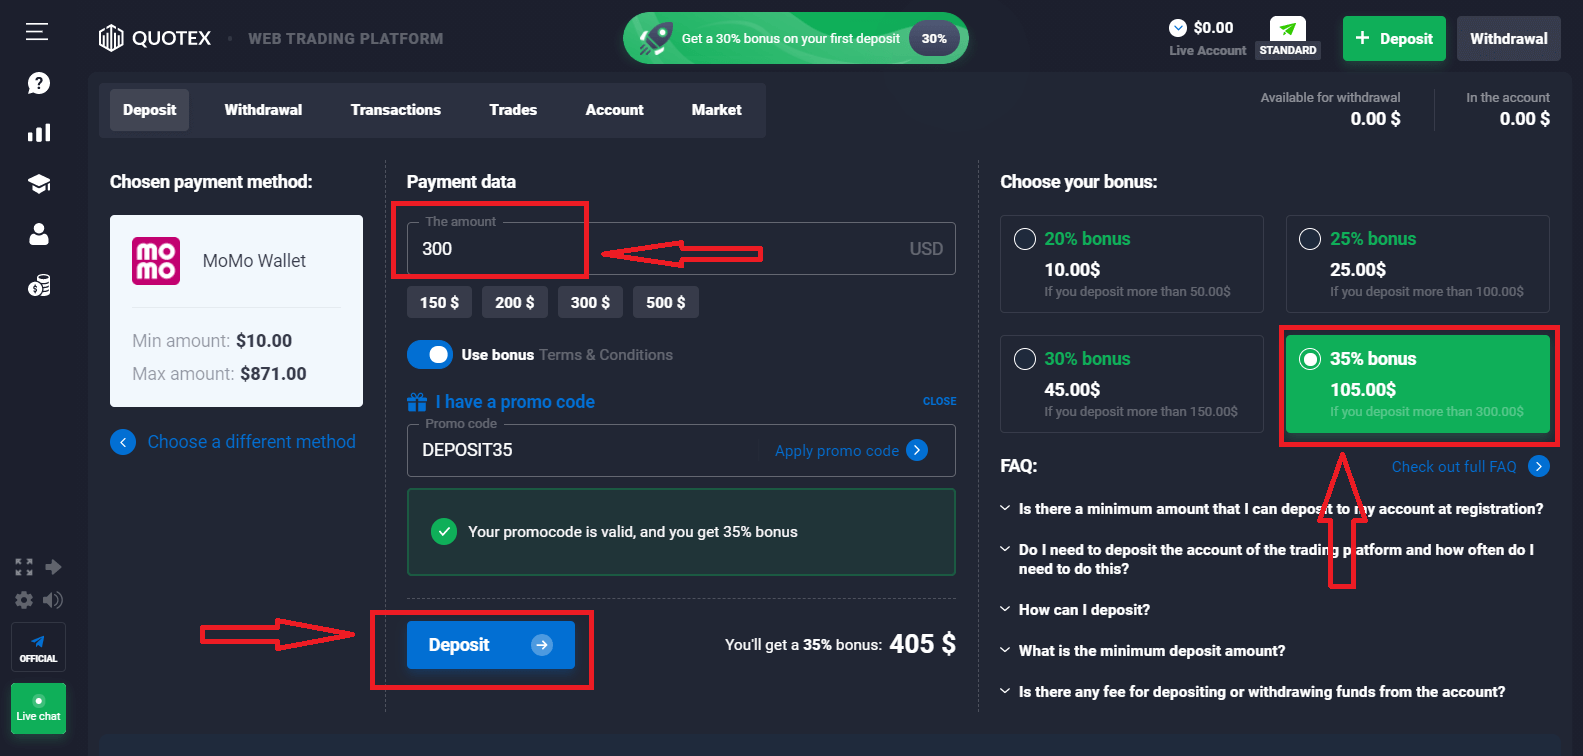 Quotex Deposit Methods - How to make a Deposit in Quotex